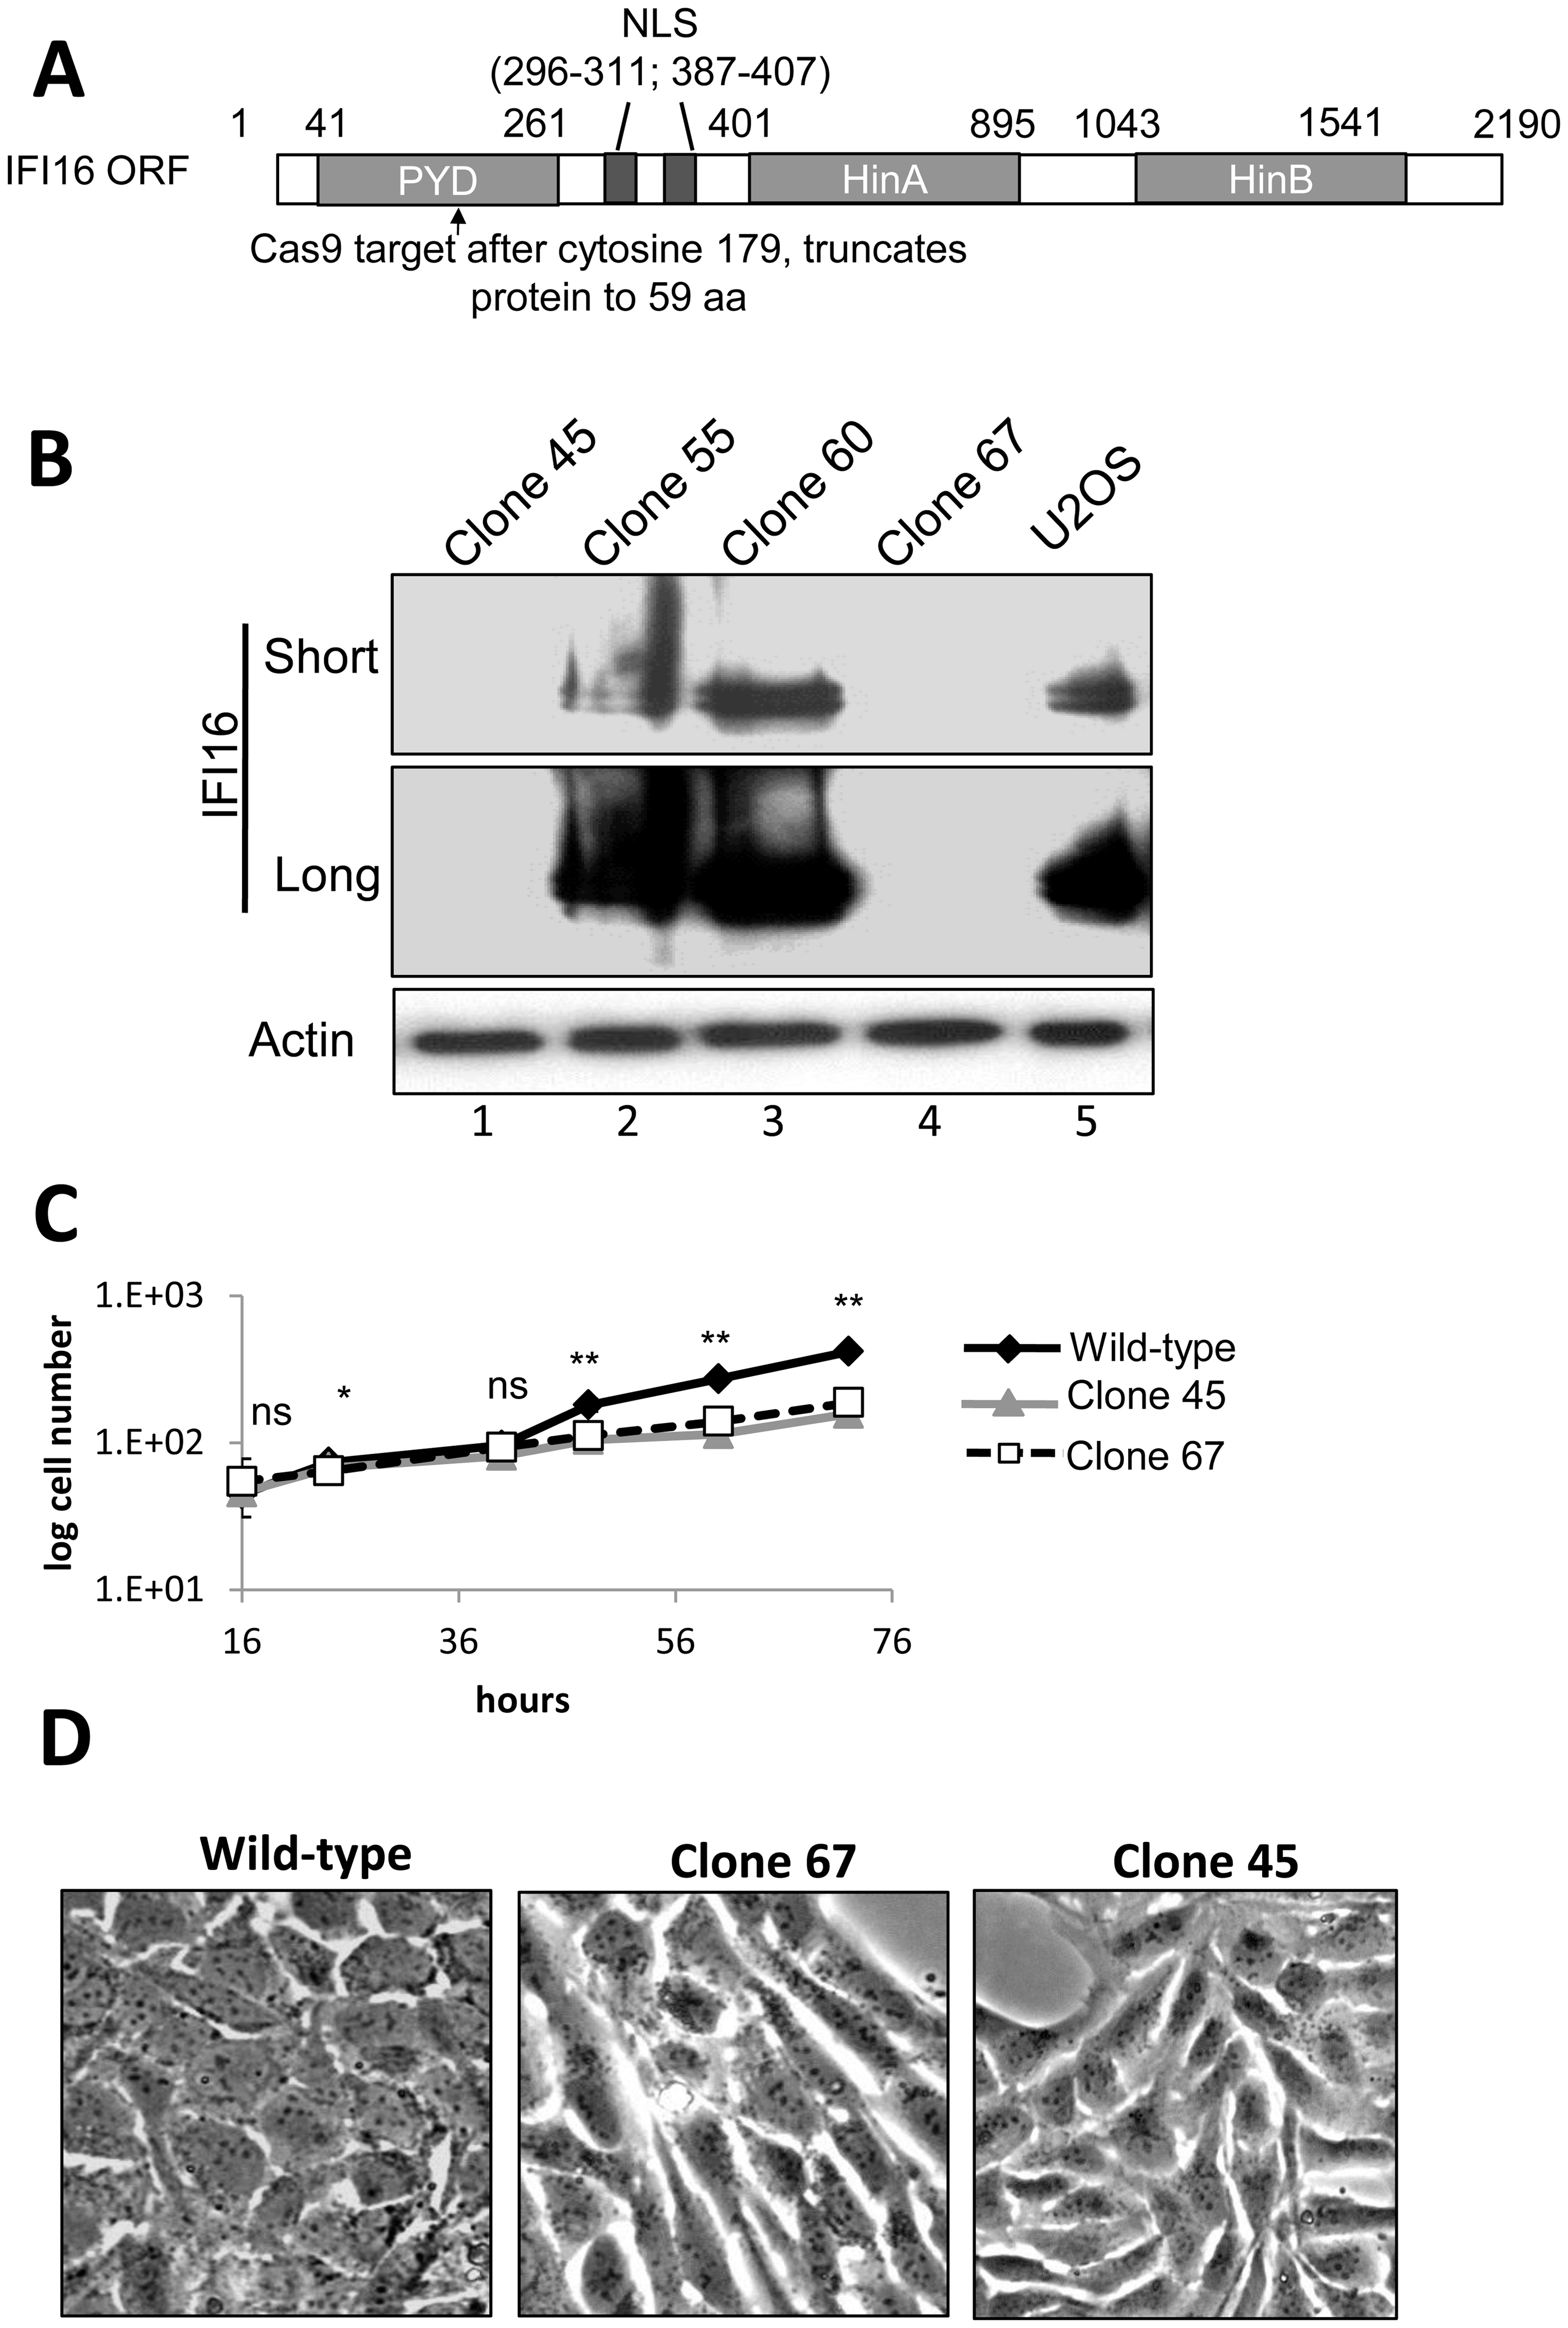 Cas9-mediated IFI16 gene editing and permanent depletion from U2OS cells.